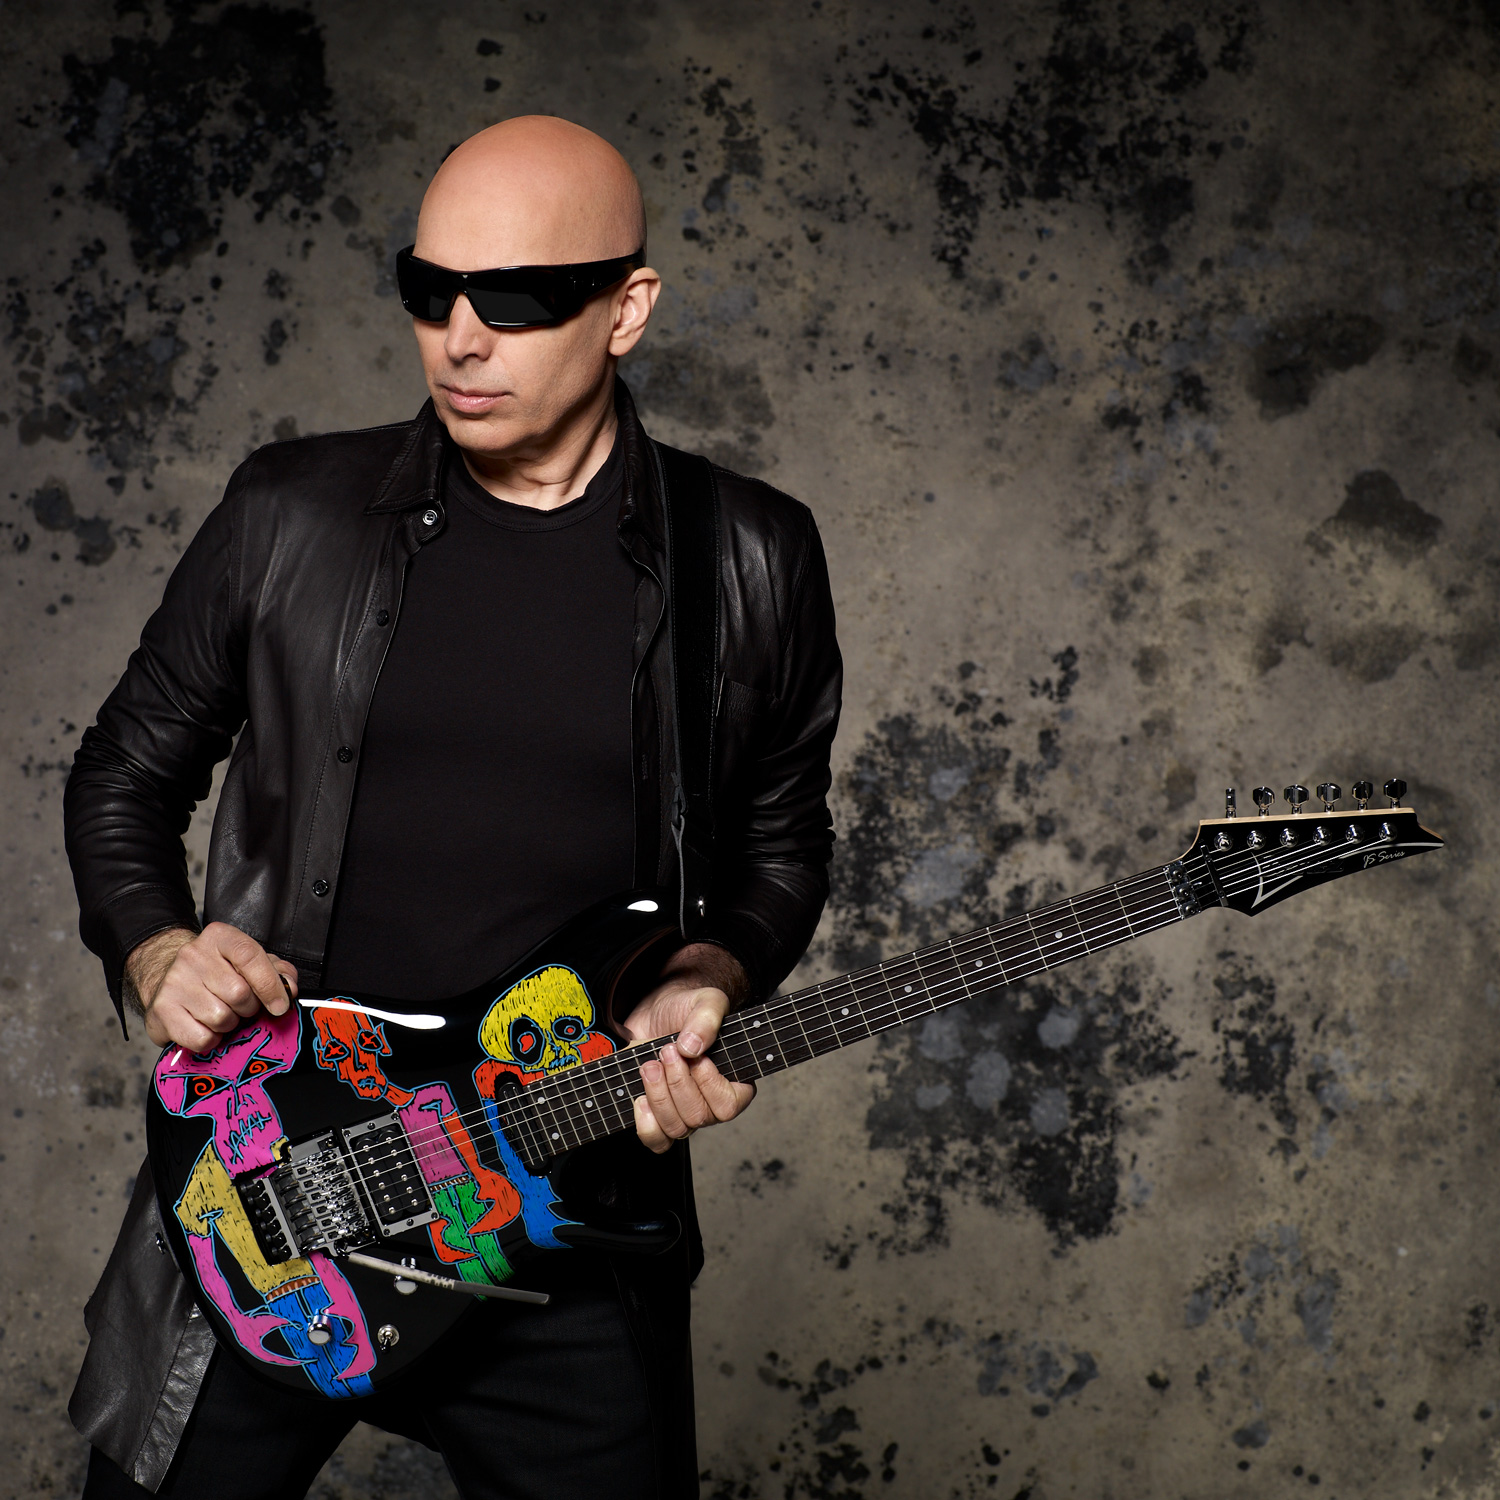 Joe Satriani photo by Larry DiMarzio